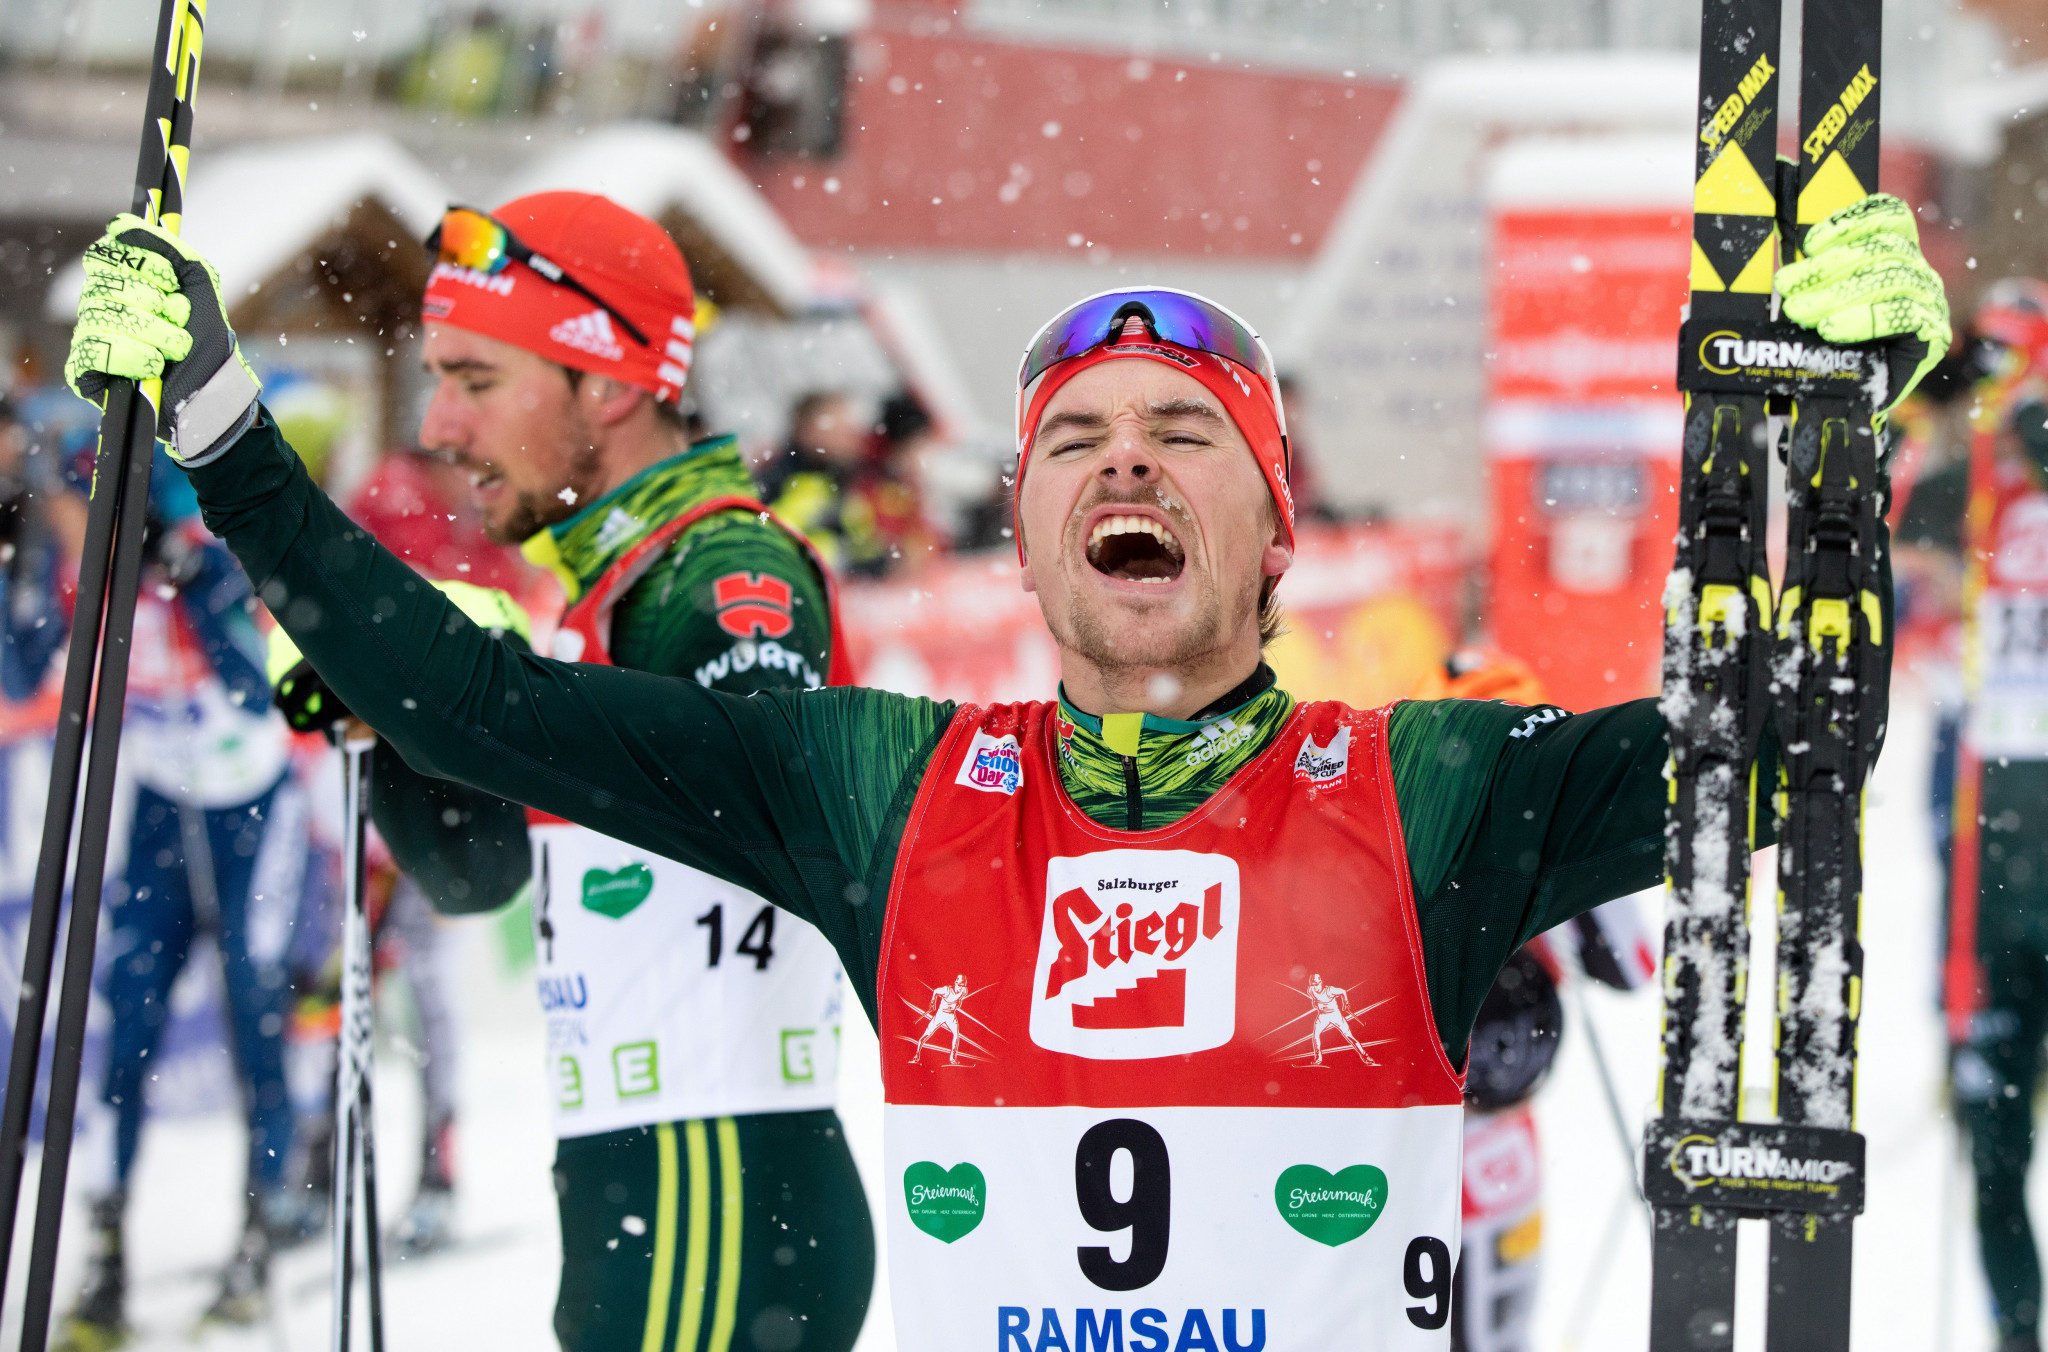 Rießle clinches Nordic Combined World Cup win as Schmid takes overall lead